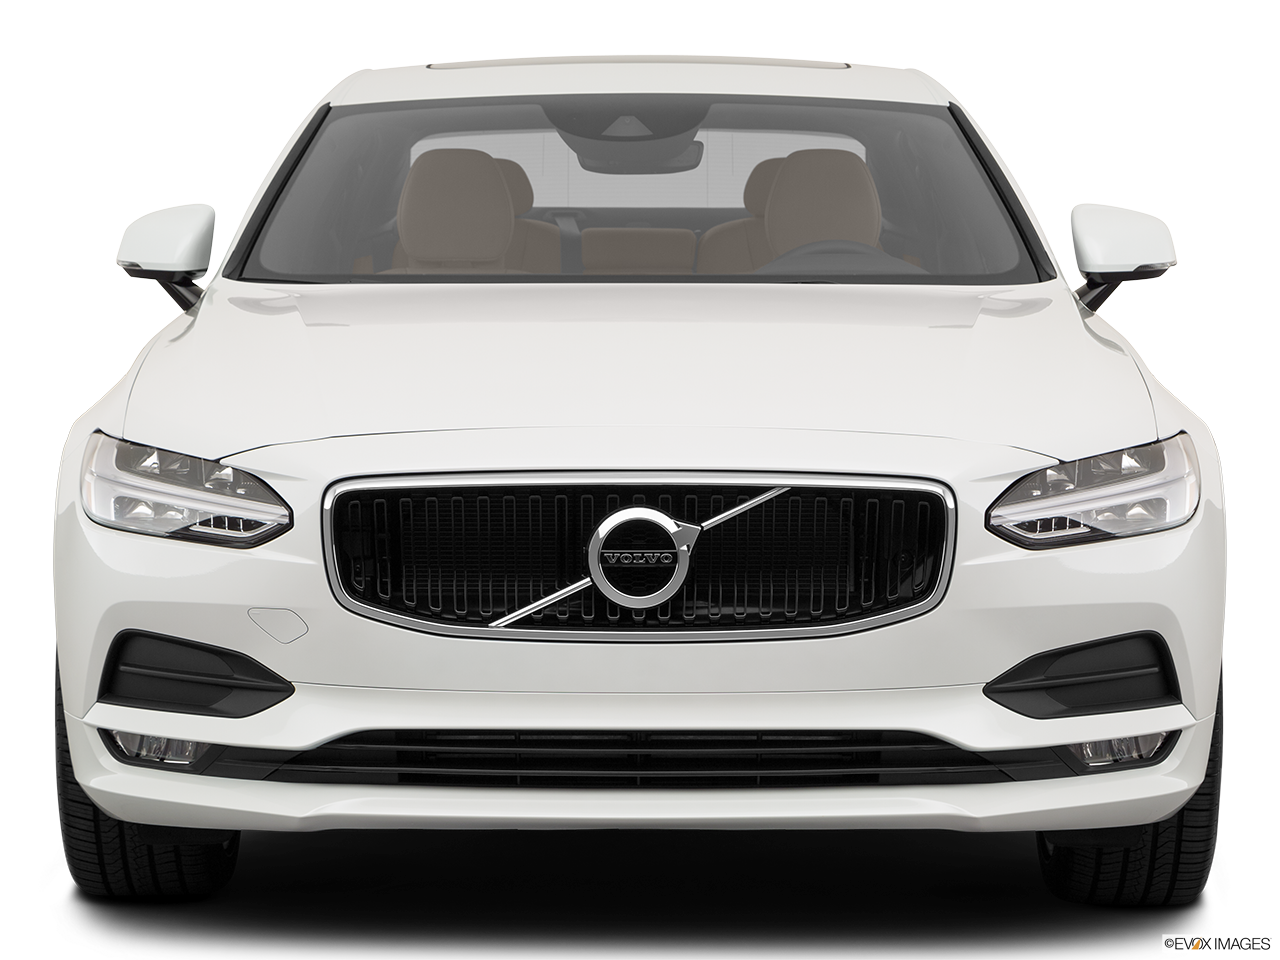 Front view of the Volvo S90 PHEV